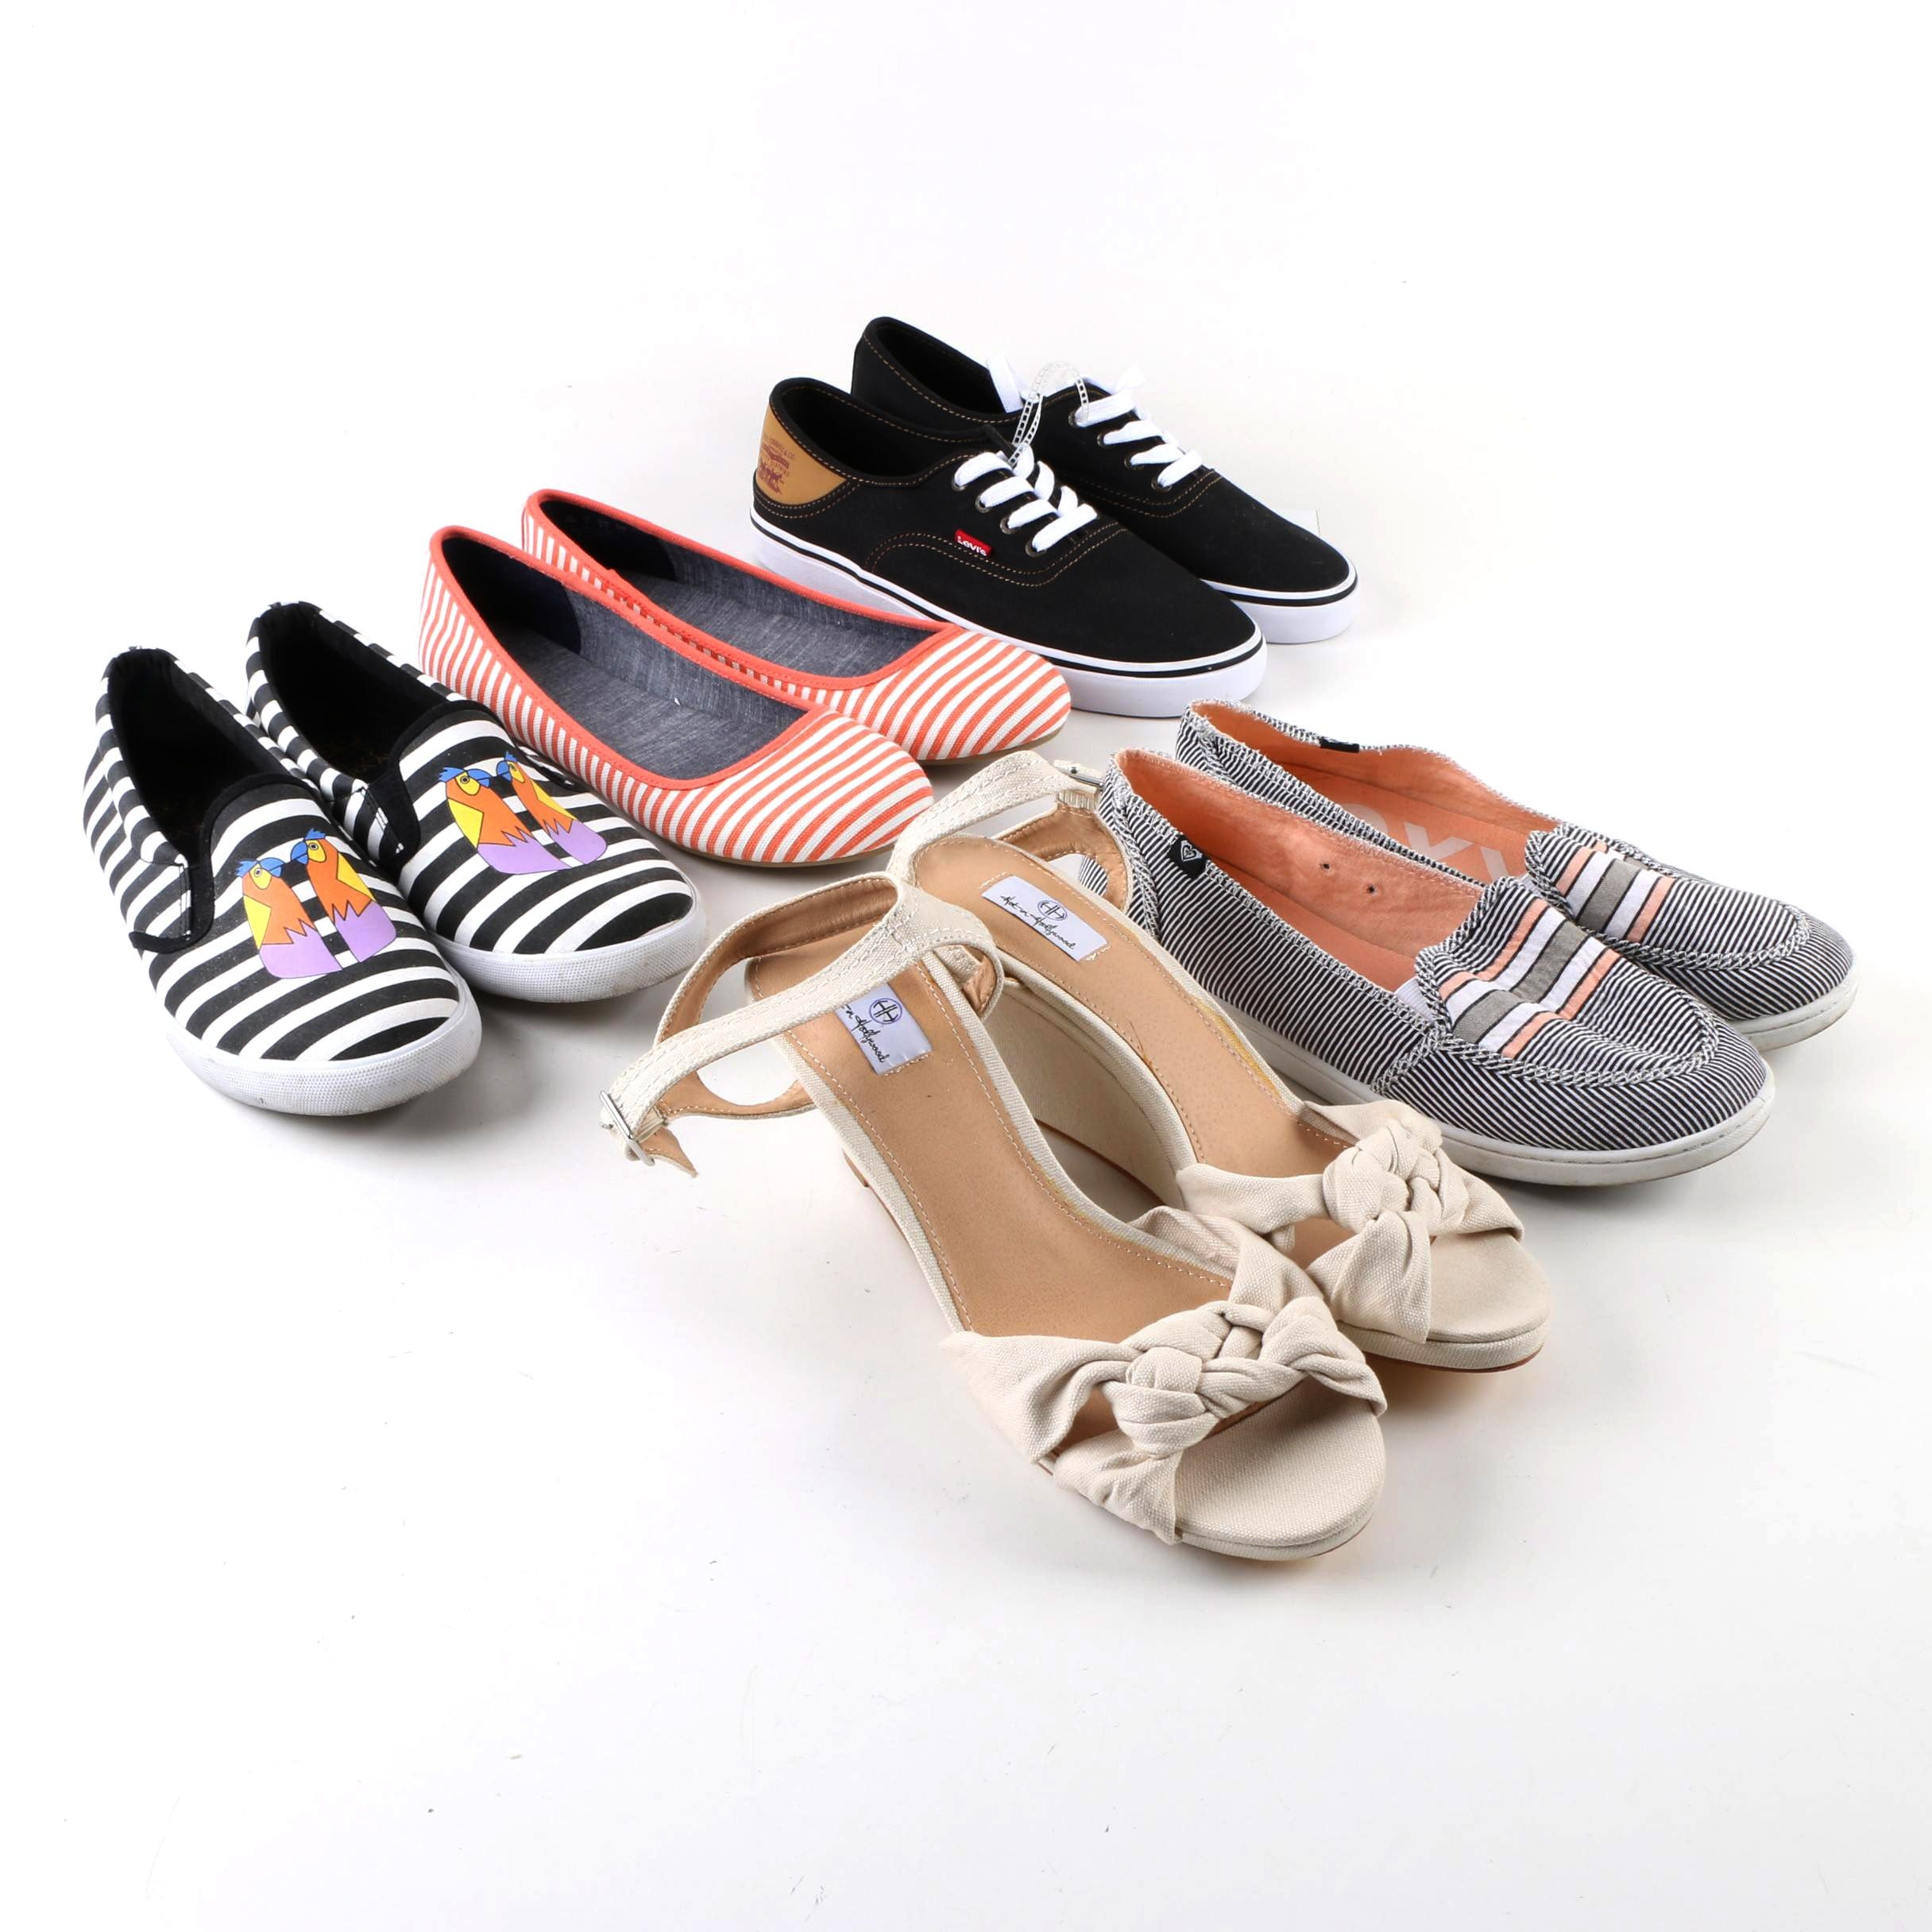 Women's Canvas Sneakers, Flats and Wedges Including Levi's and Roxy